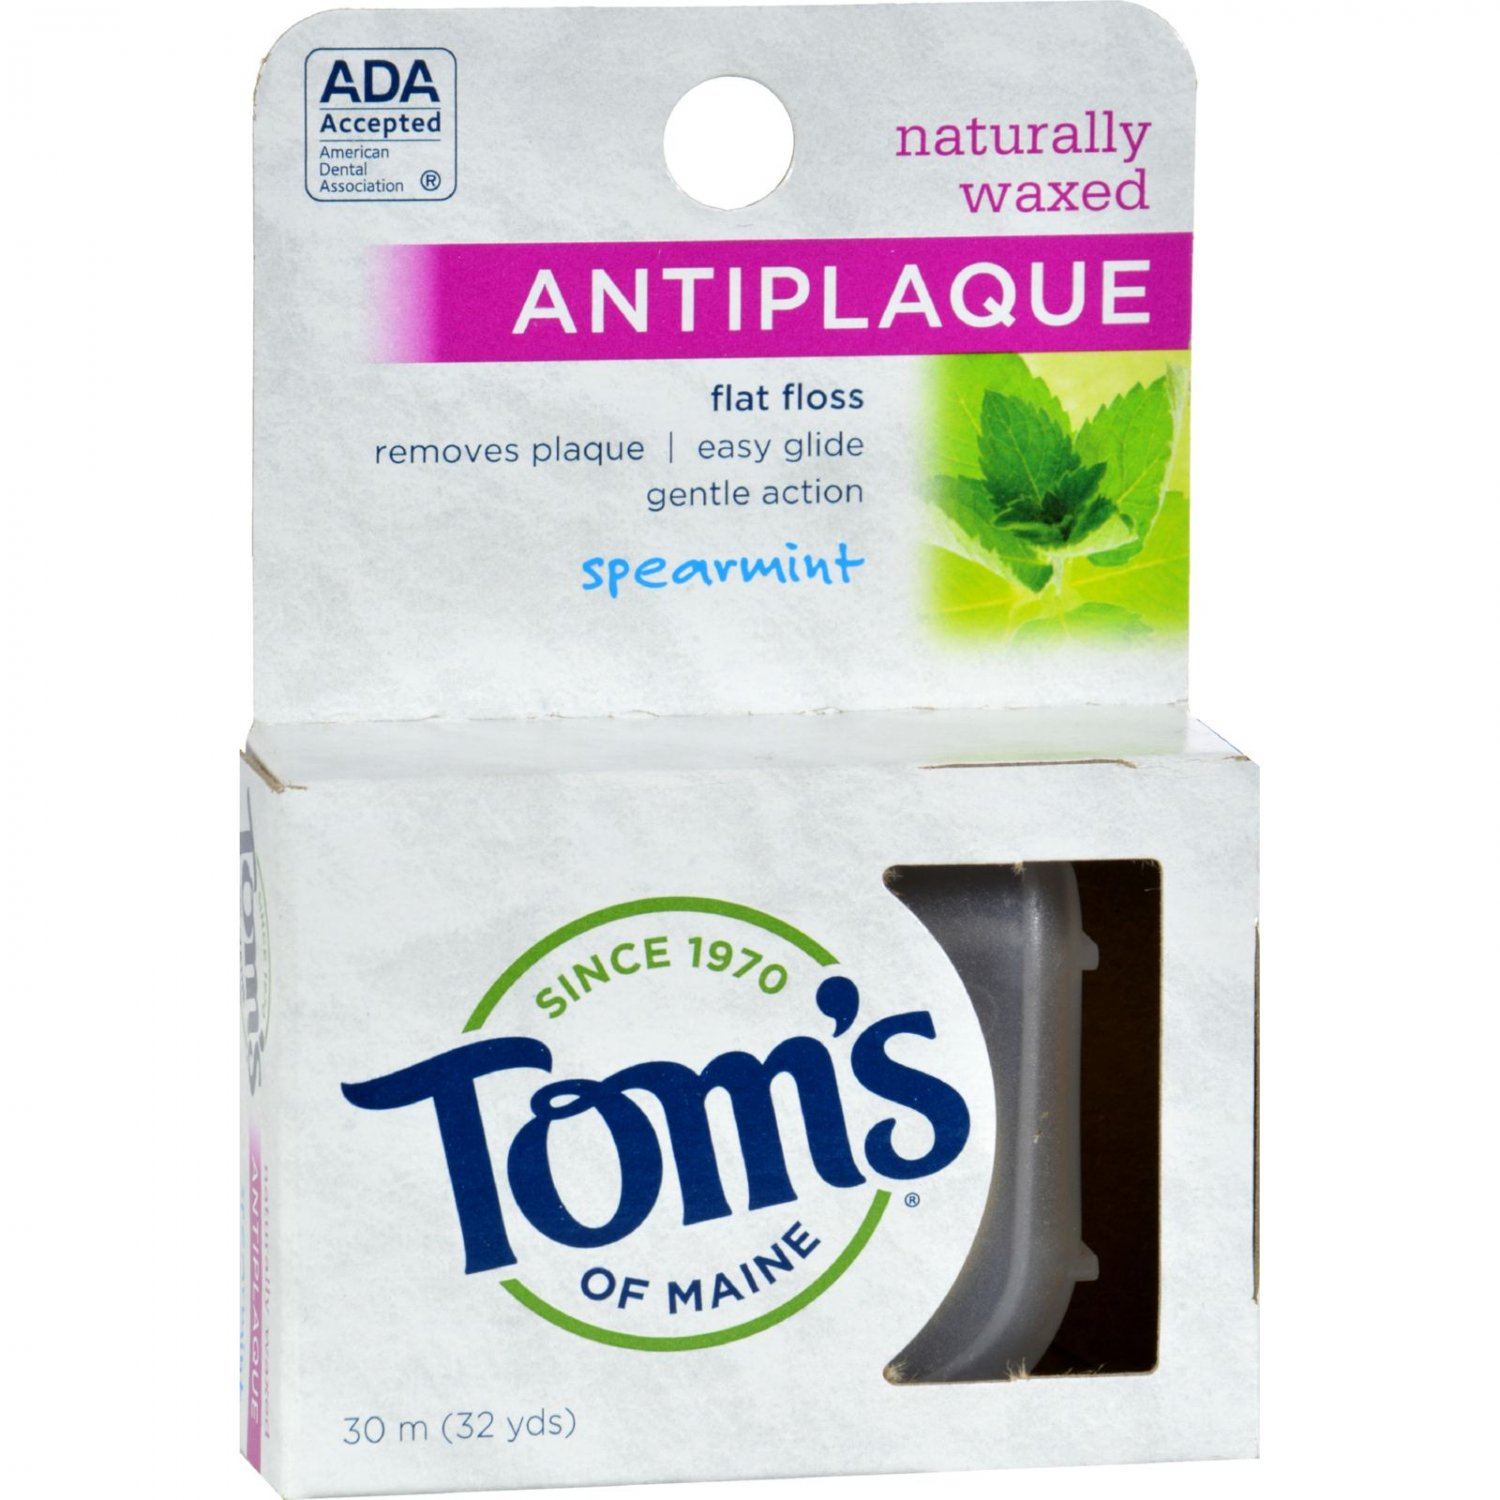 Tom's of Maine Antiplaque Flat Floss Waxed Spearmint - 32 Yards - Case of 6